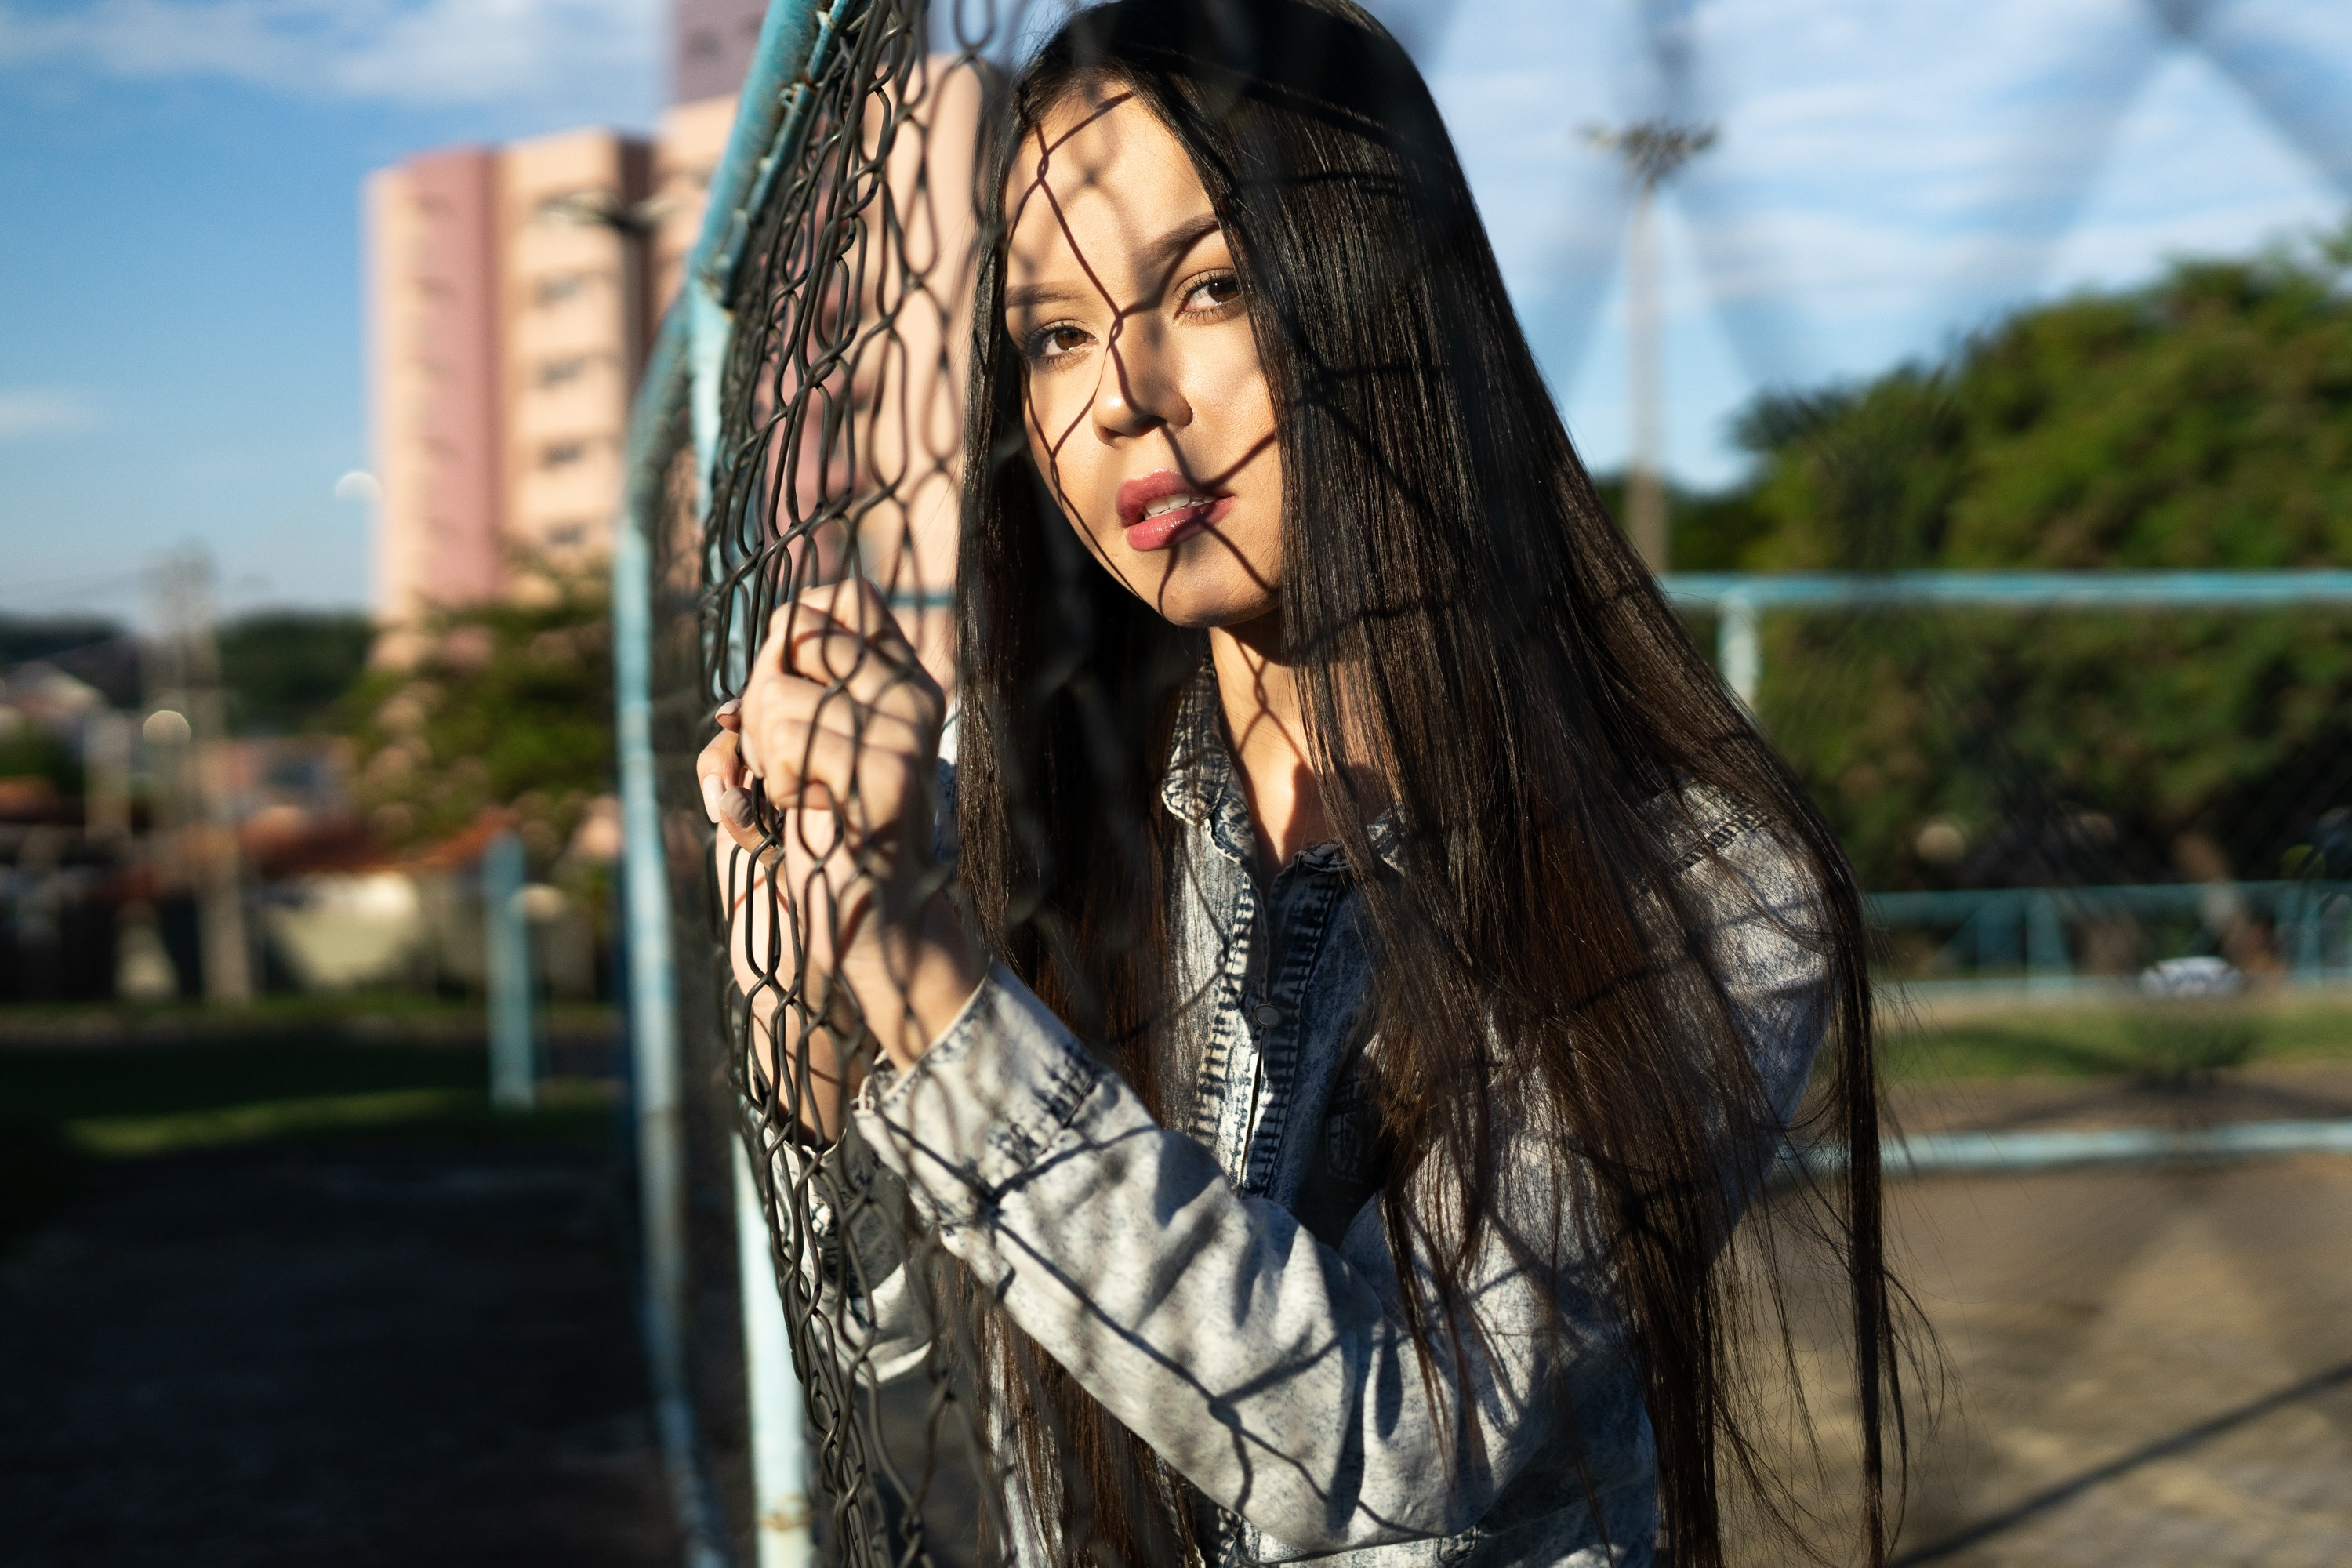 Woman leaning forward on a chain-link fence · Free Stock Photo